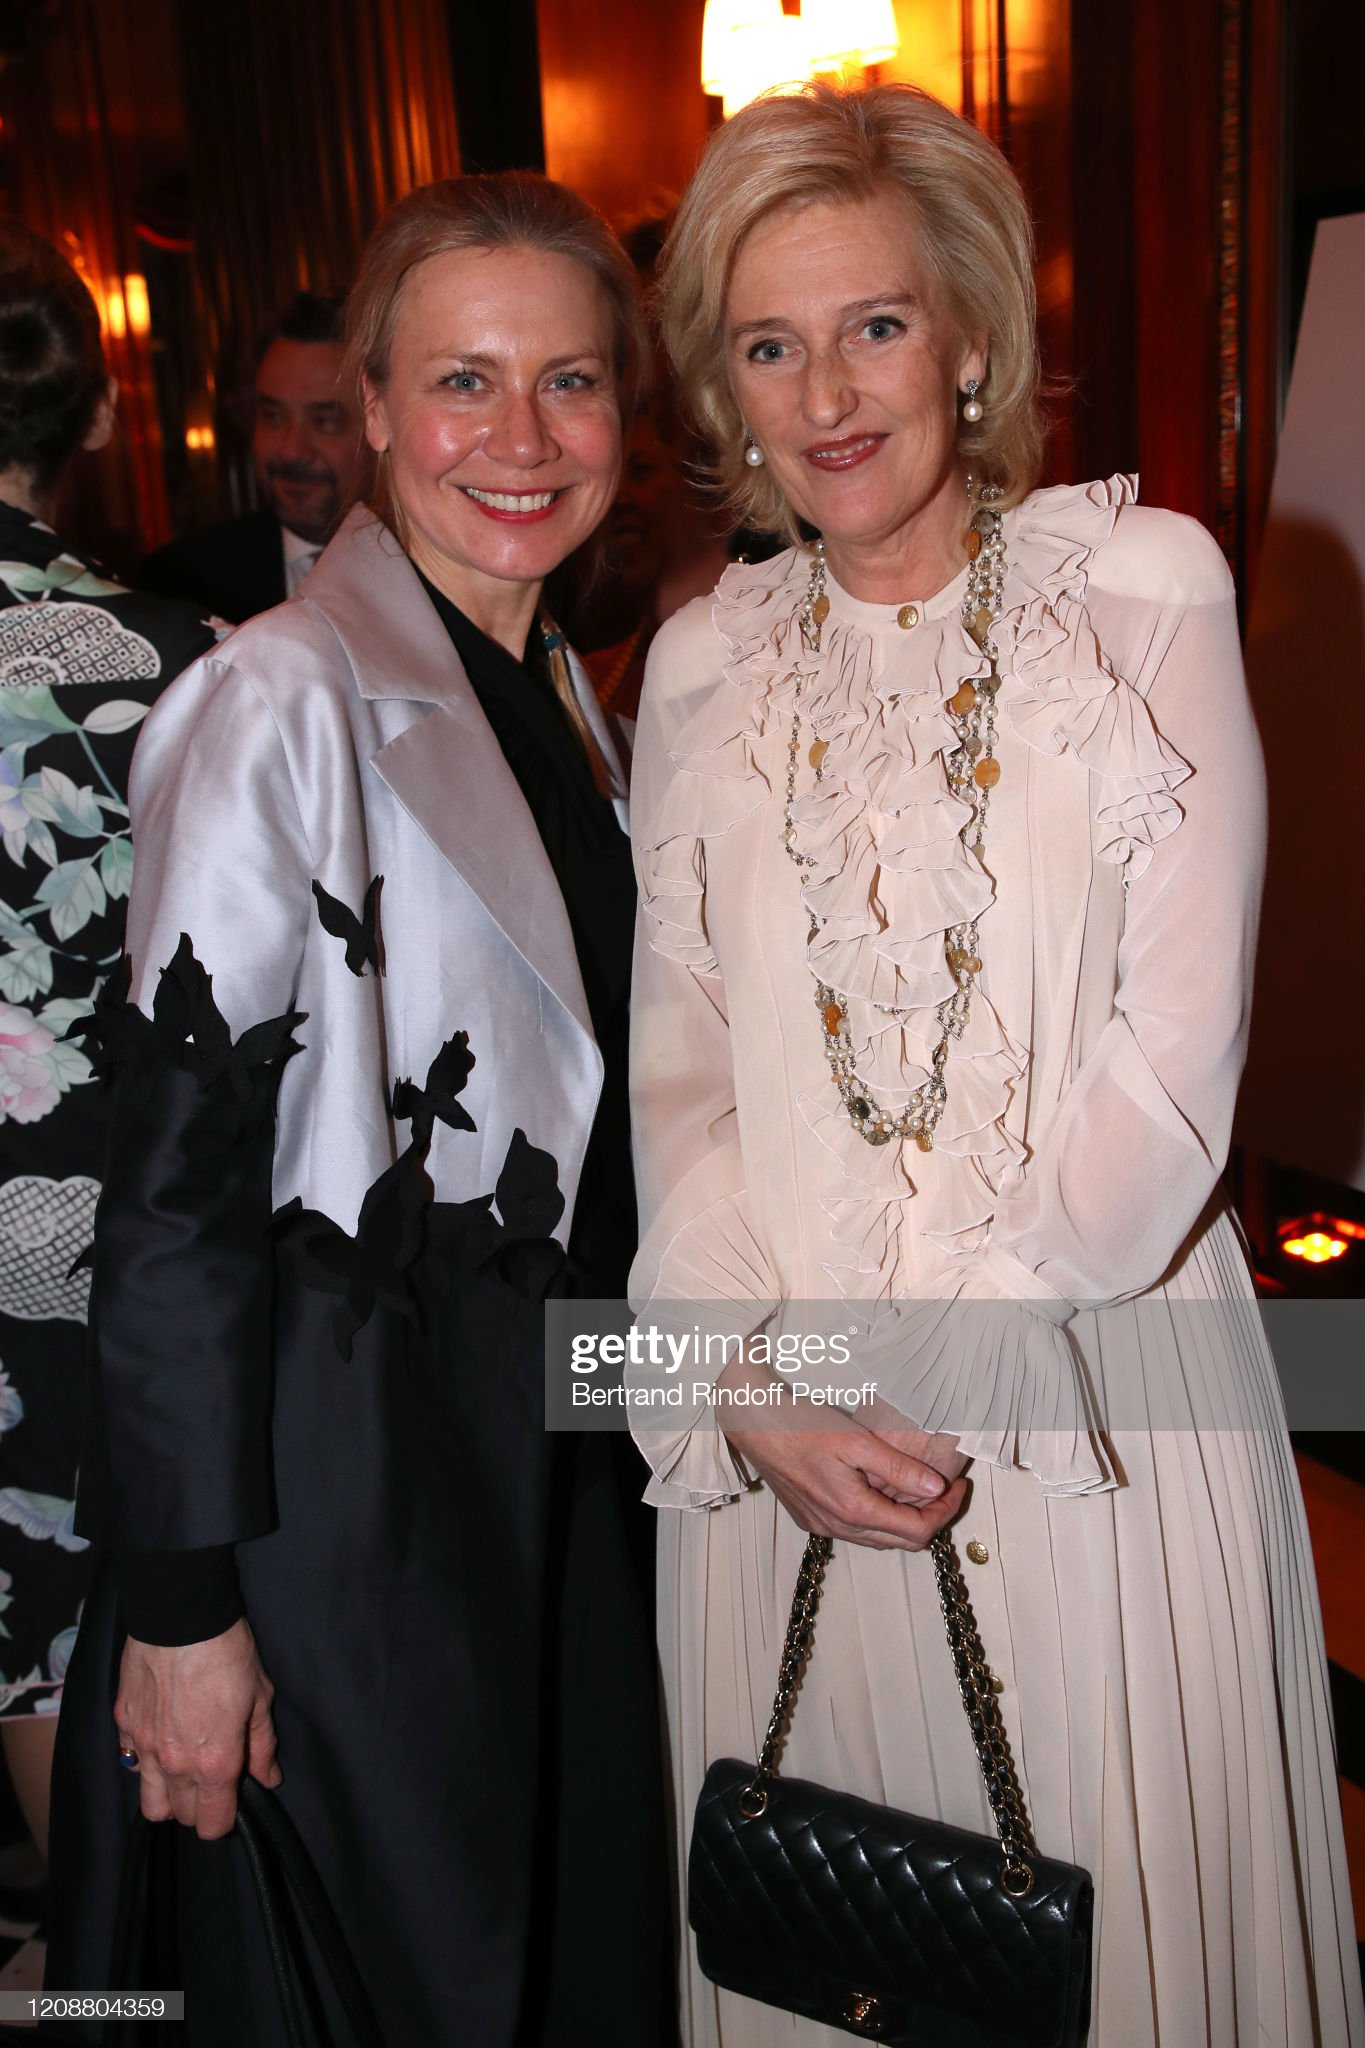 https://media.gettyimages.com/photos/astrid-wendlandt-and-princess-astrid-of-belgium-attend-the-regine-picture-id1208804359?s=2048x2048